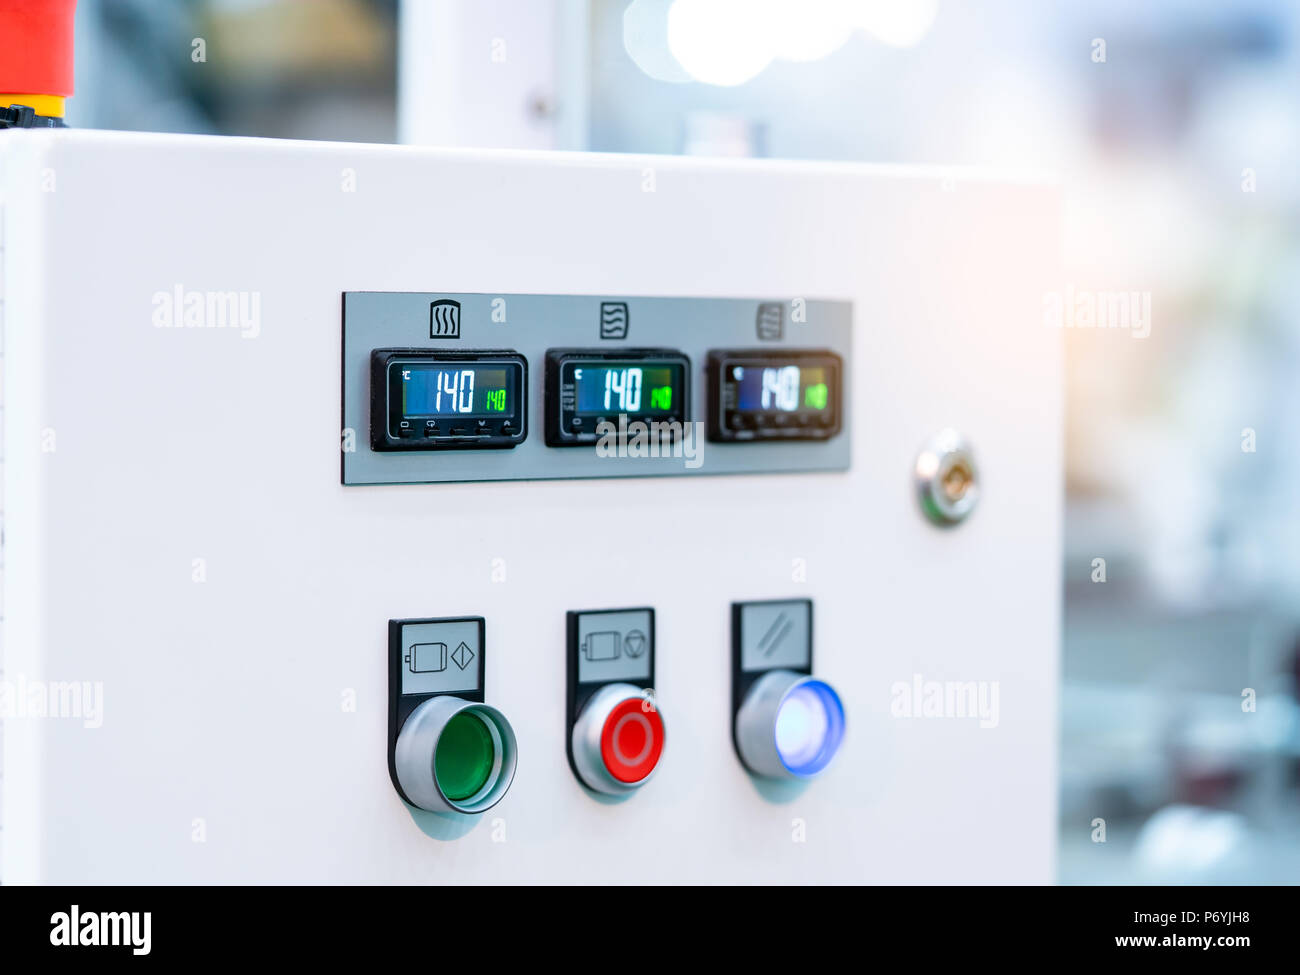 Temperature control panel cabinet contain digital screen display for temperature gauge. green, red, and white button for open, shutdown, and adjust ma - Stock Image